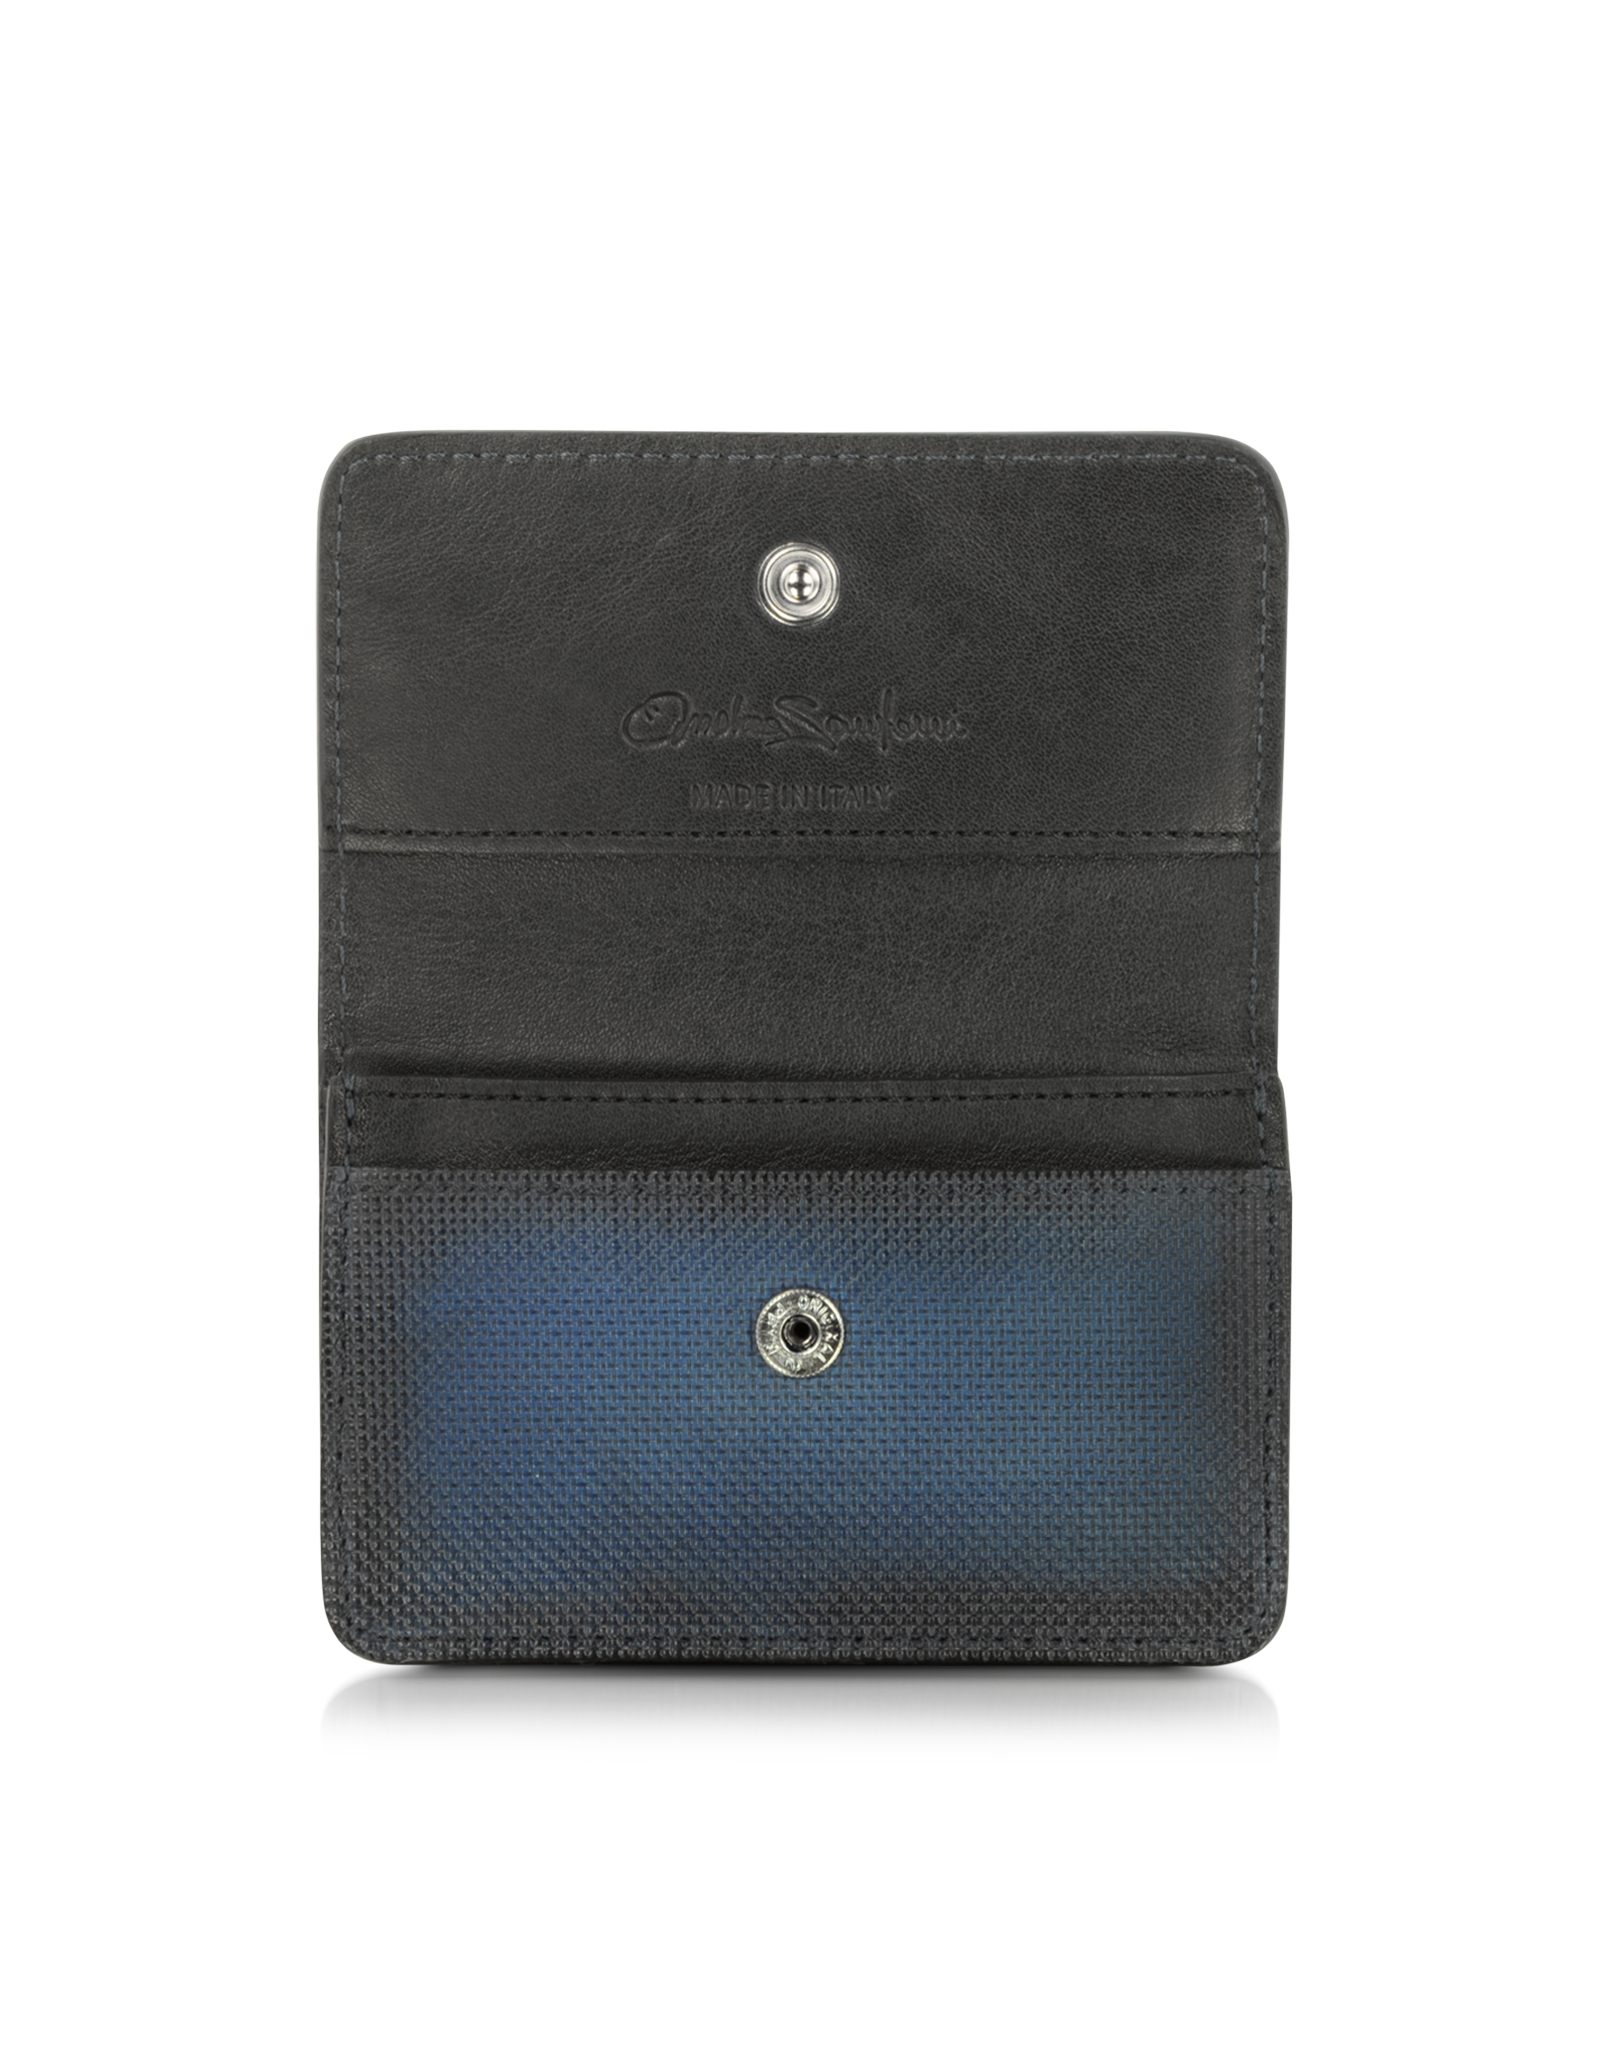 Lyst santoni blue leather business card holder in blue for men gallery reheart Images